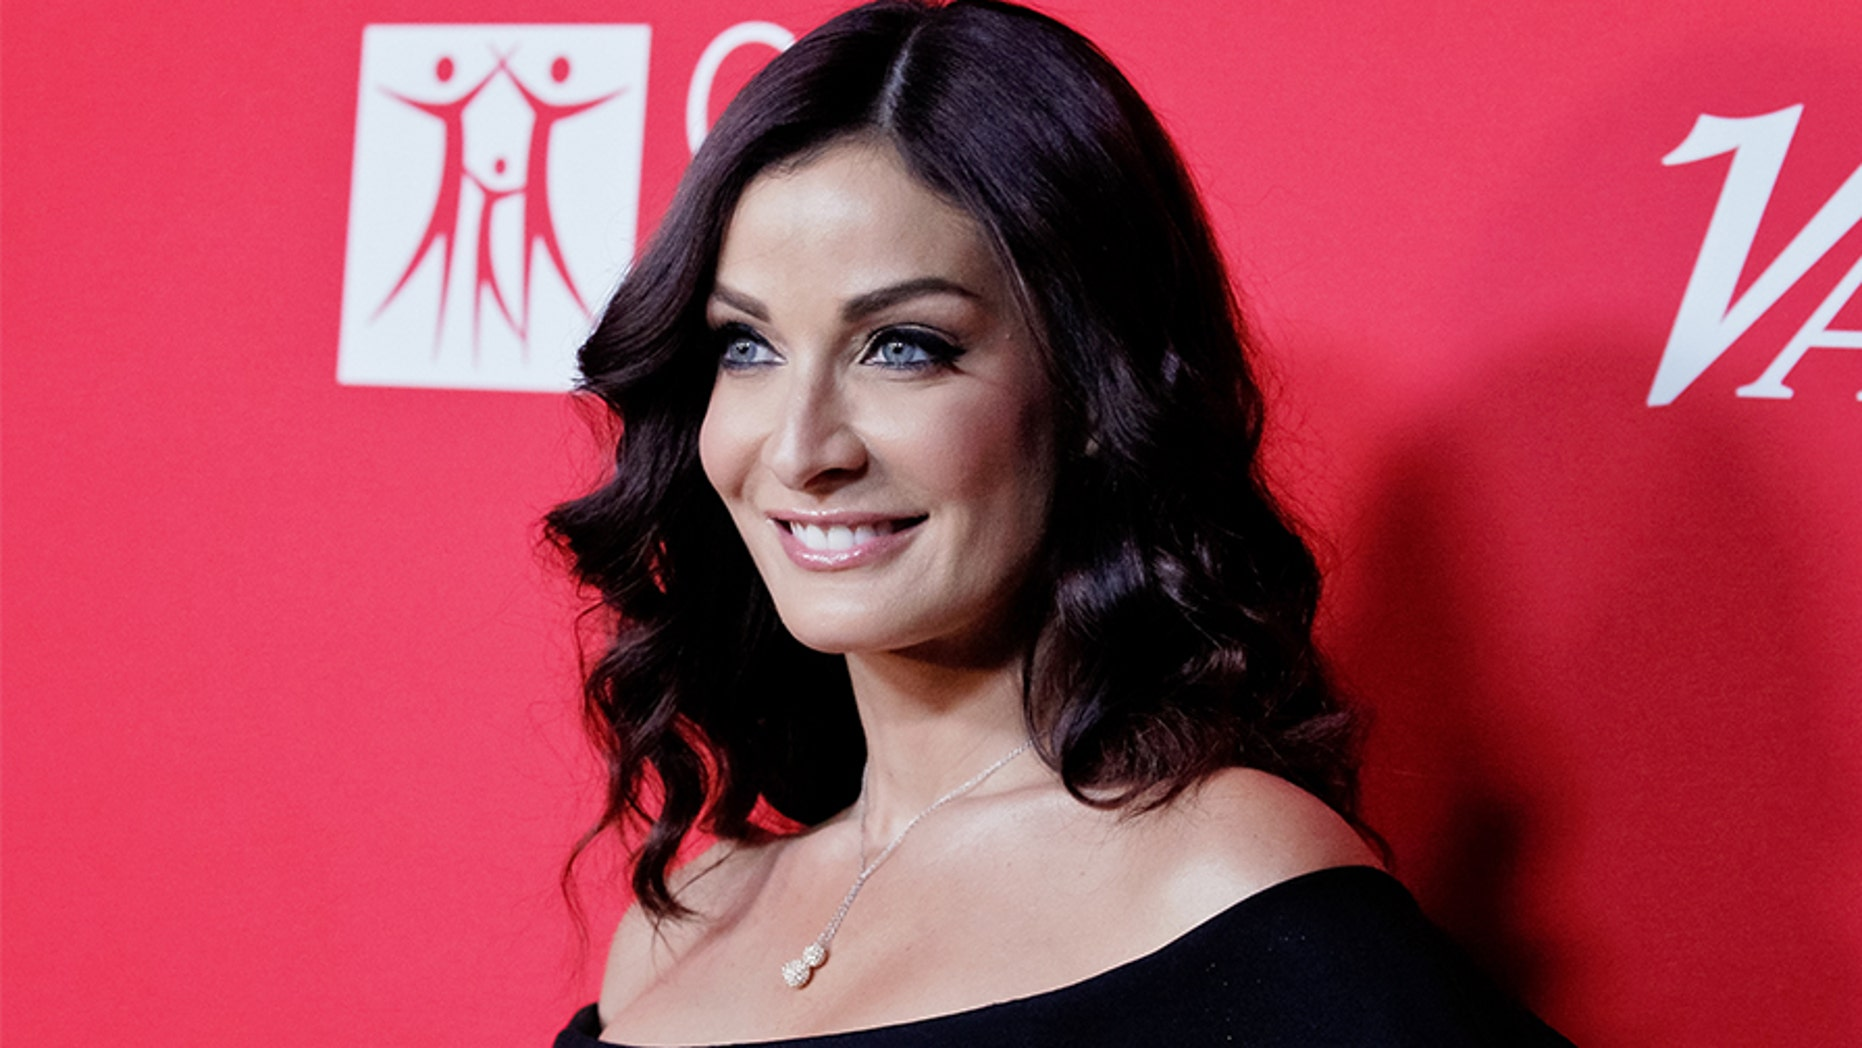 Dayanara Torres said on social media that she has skin cancer.